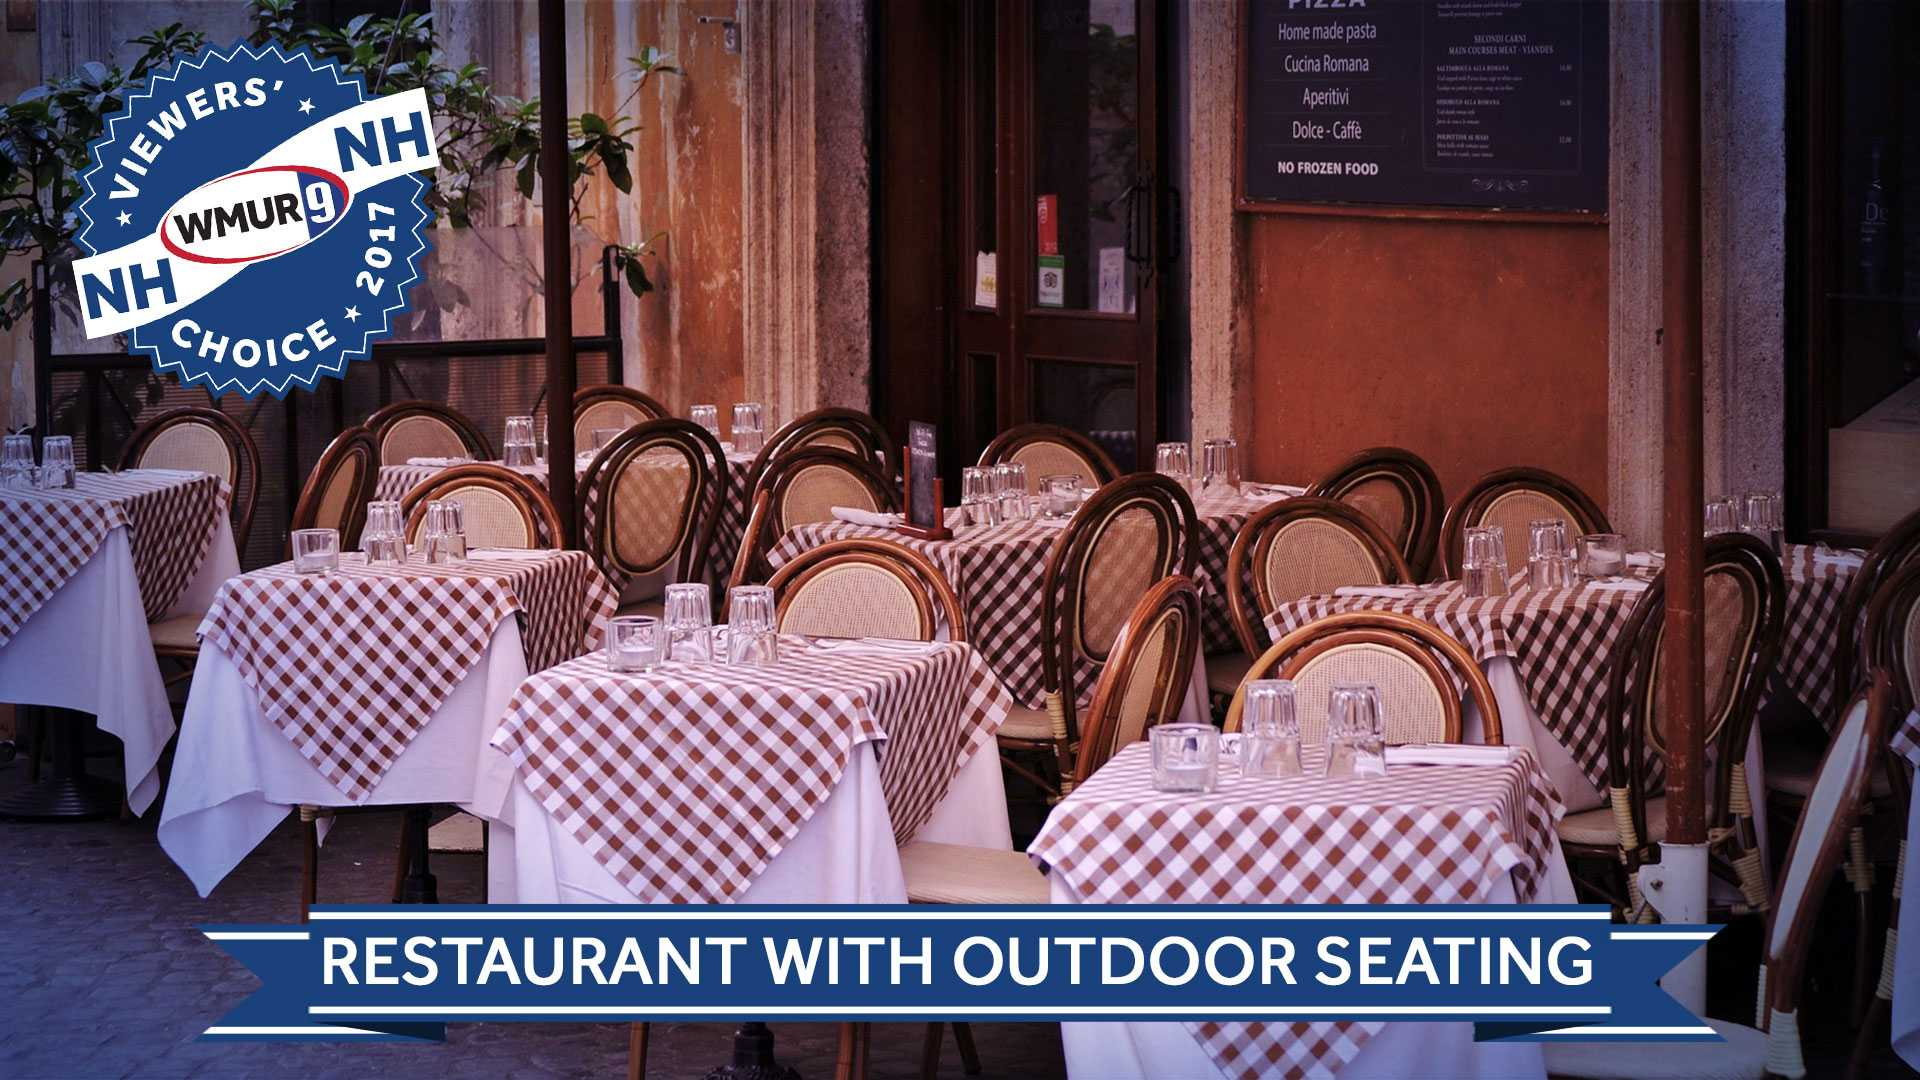 Cucina Restaurant Burlington Viewers Choice 2017 Best Restaurant With Outdoor Seating